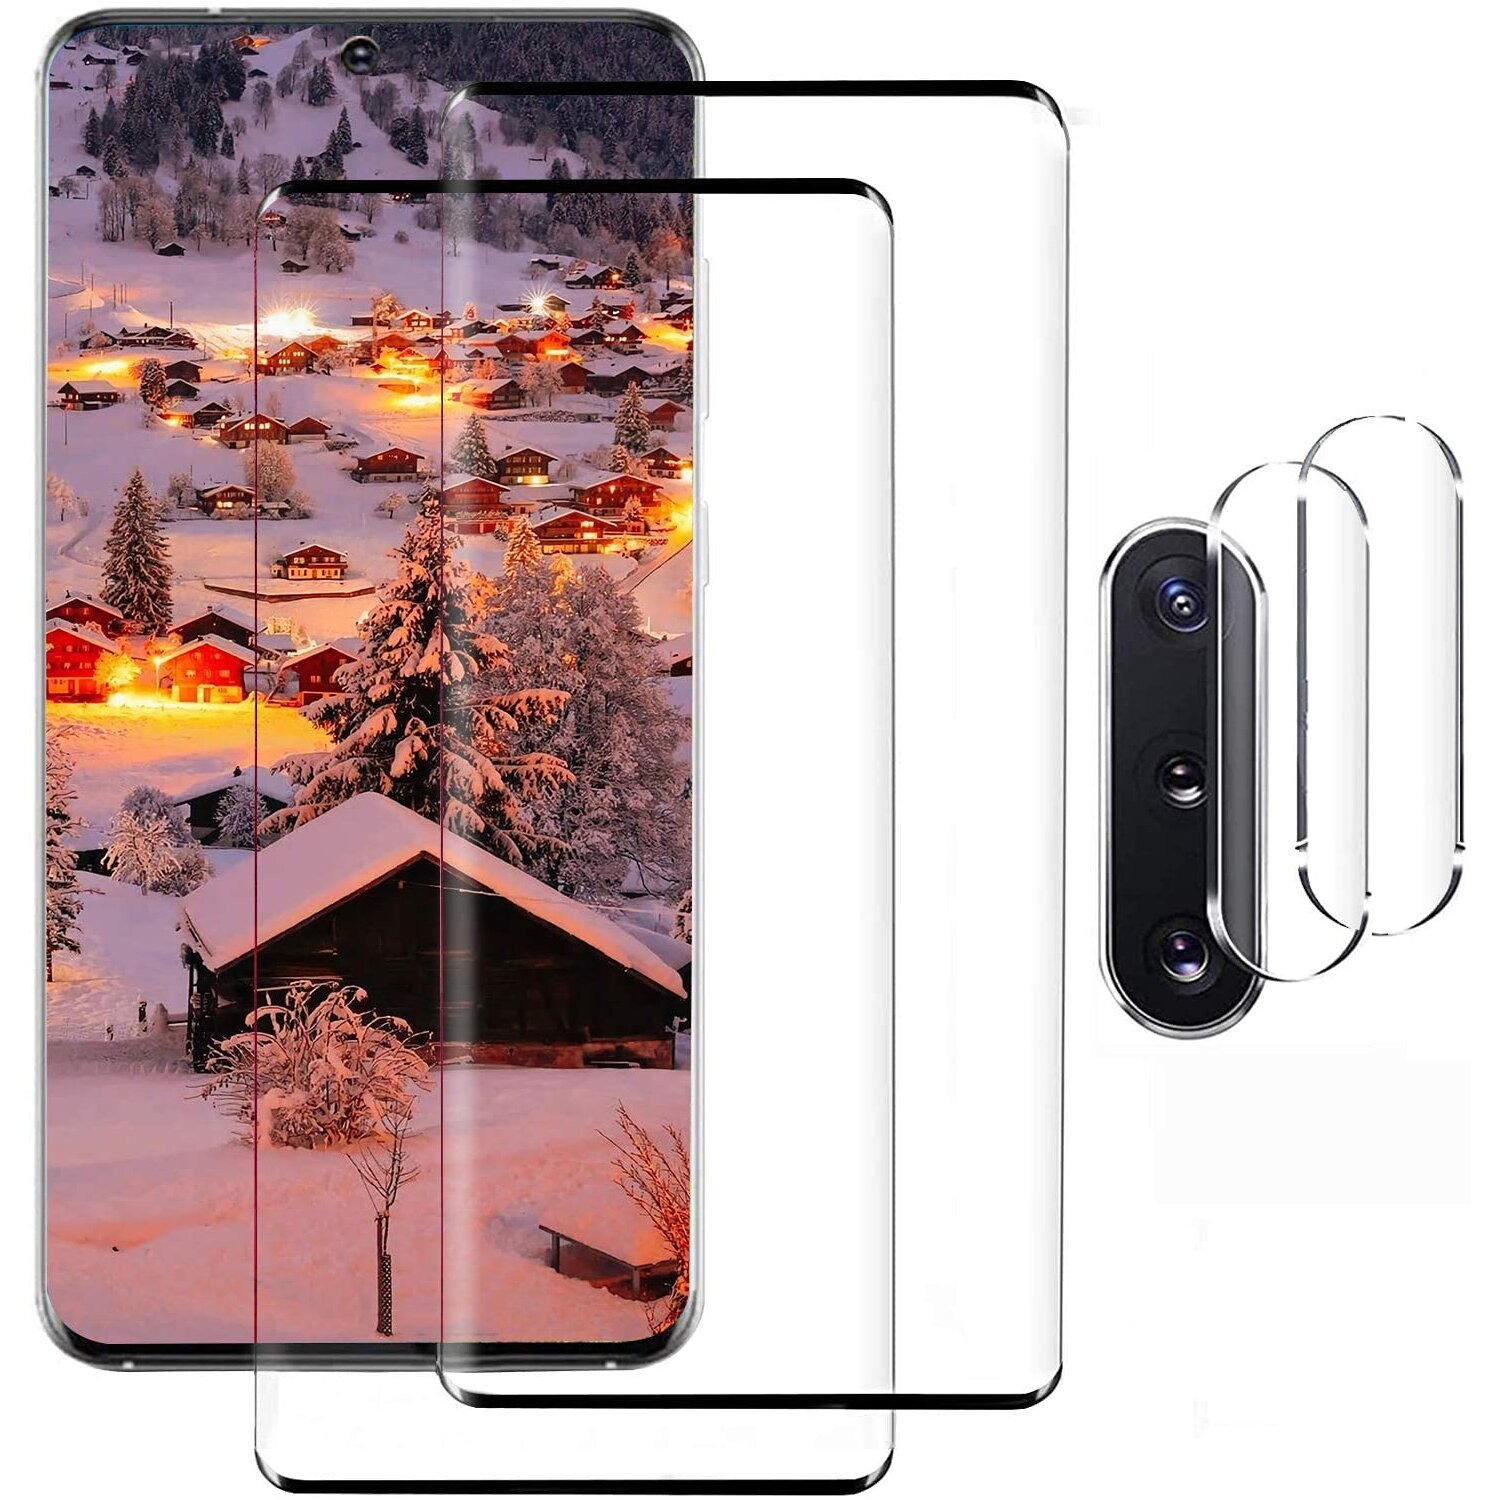 Amazon cell phone screen protectors